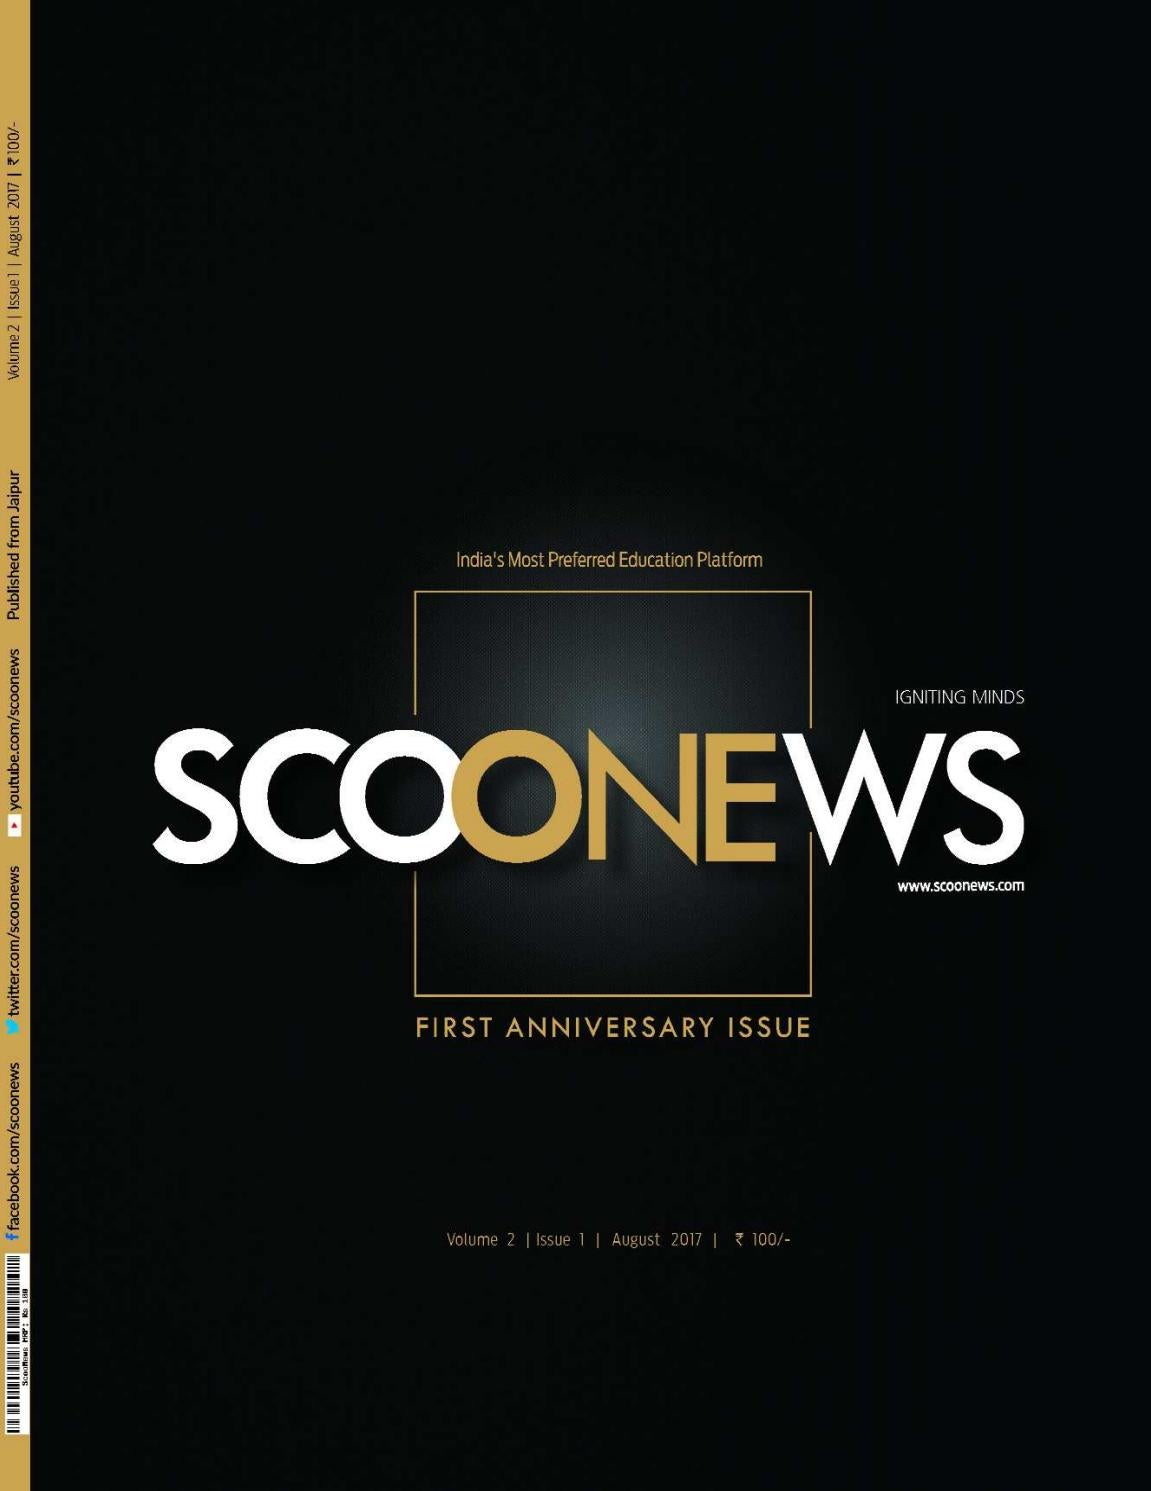 2e6a590febe ScooNews - First Anniversary Issue Vol 2 issue 1 August 2017 by ...